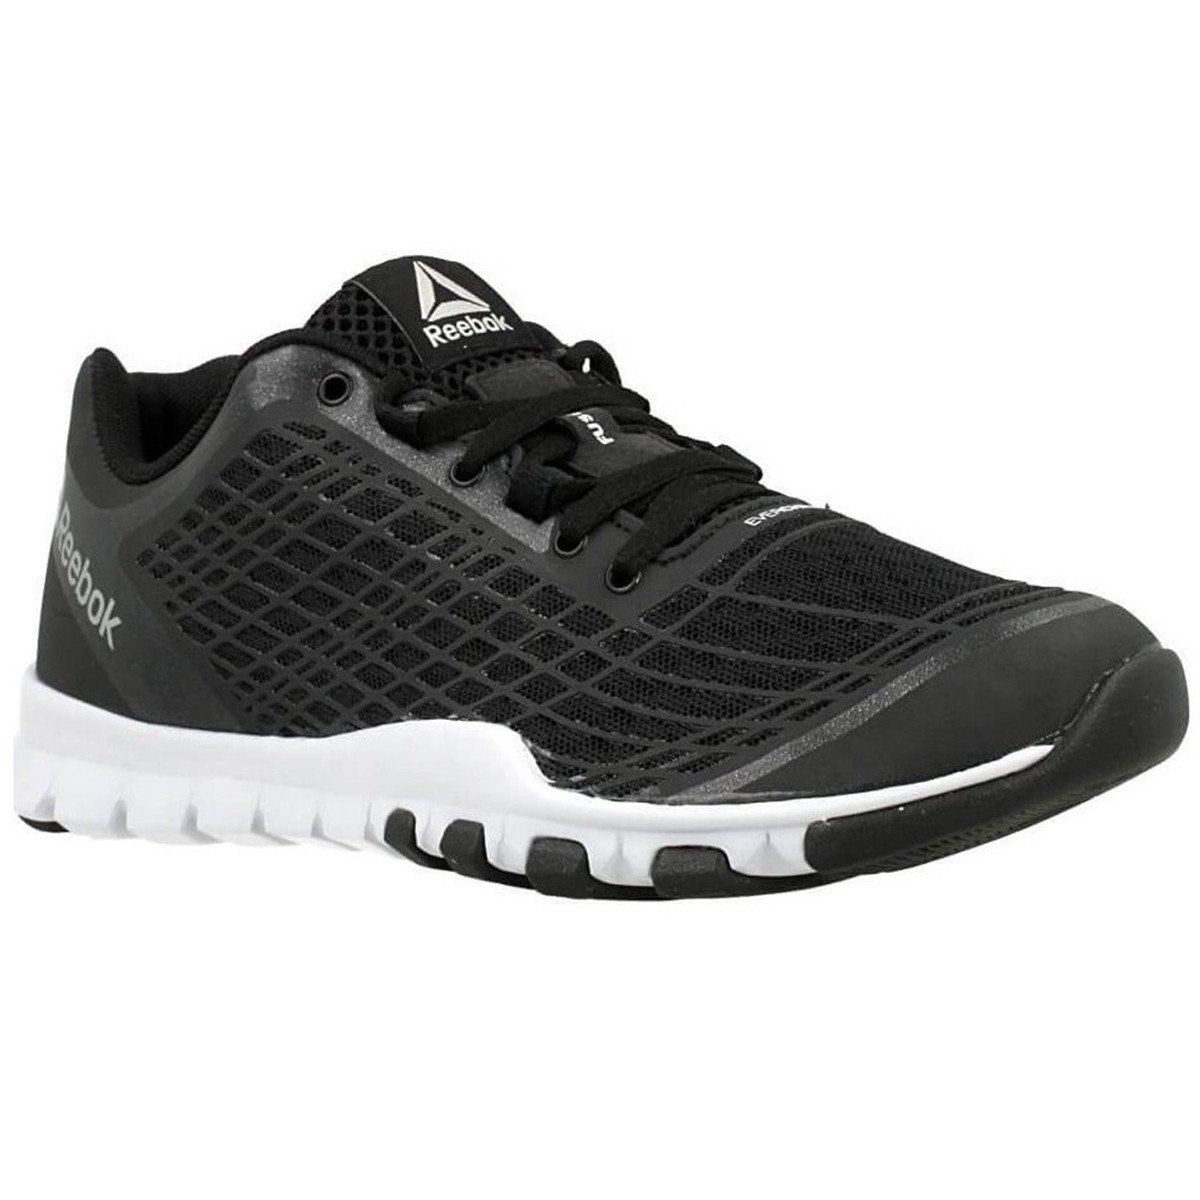 chaussures multisports chaussures reebok chaussures chaussures reebok reebok multisports reebok multisports multisports NOk0wP8nX